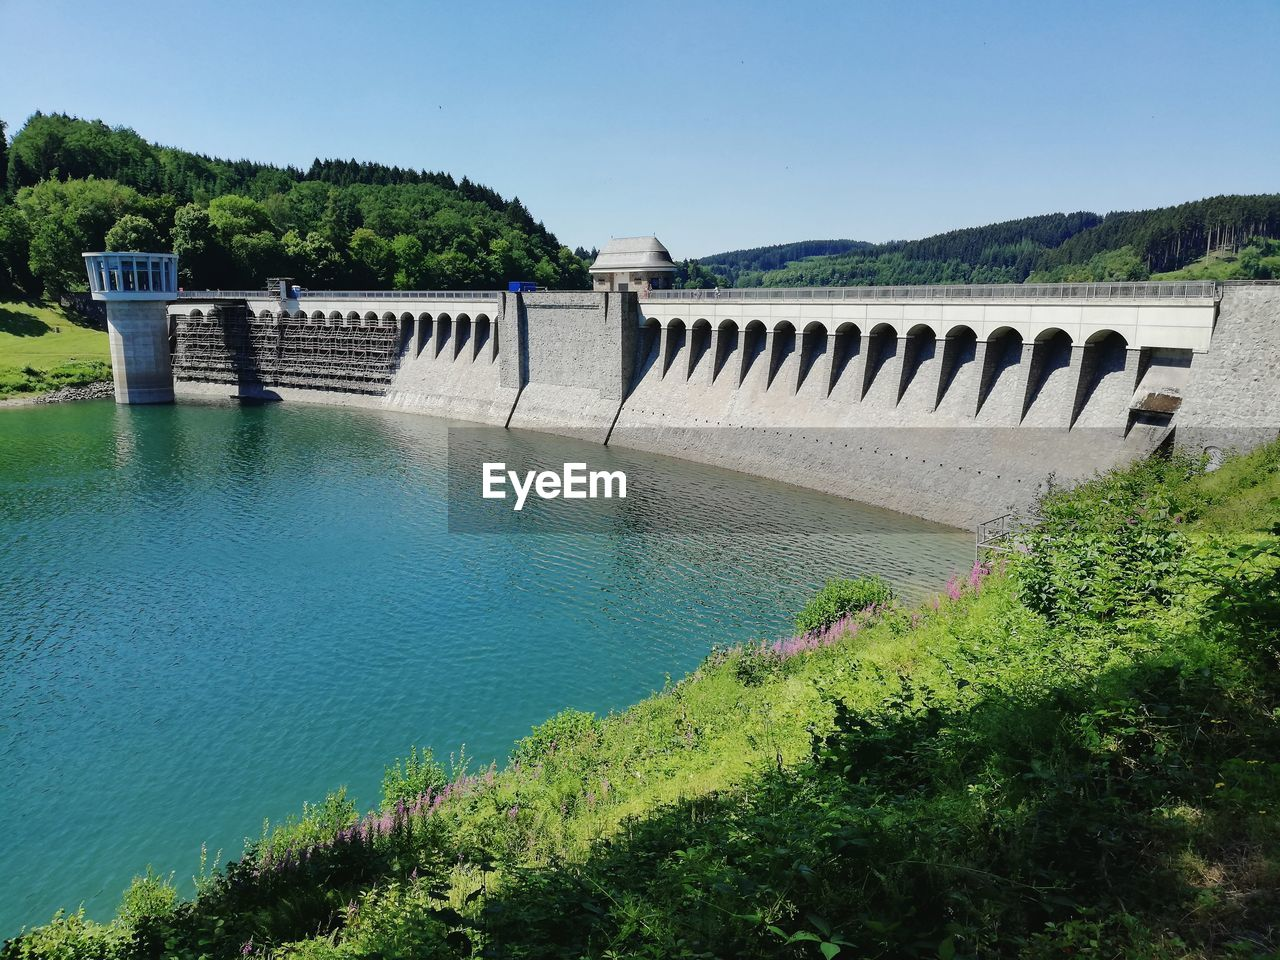 water, plant, sky, architecture, hydroelectric power, nature, dam, tree, built structure, renewable energy, day, fuel and power generation, beauty in nature, environmental conservation, no people, scenics - nature, outdoors, green color, growth, bridge - man made structure, flowing water, arch bridge